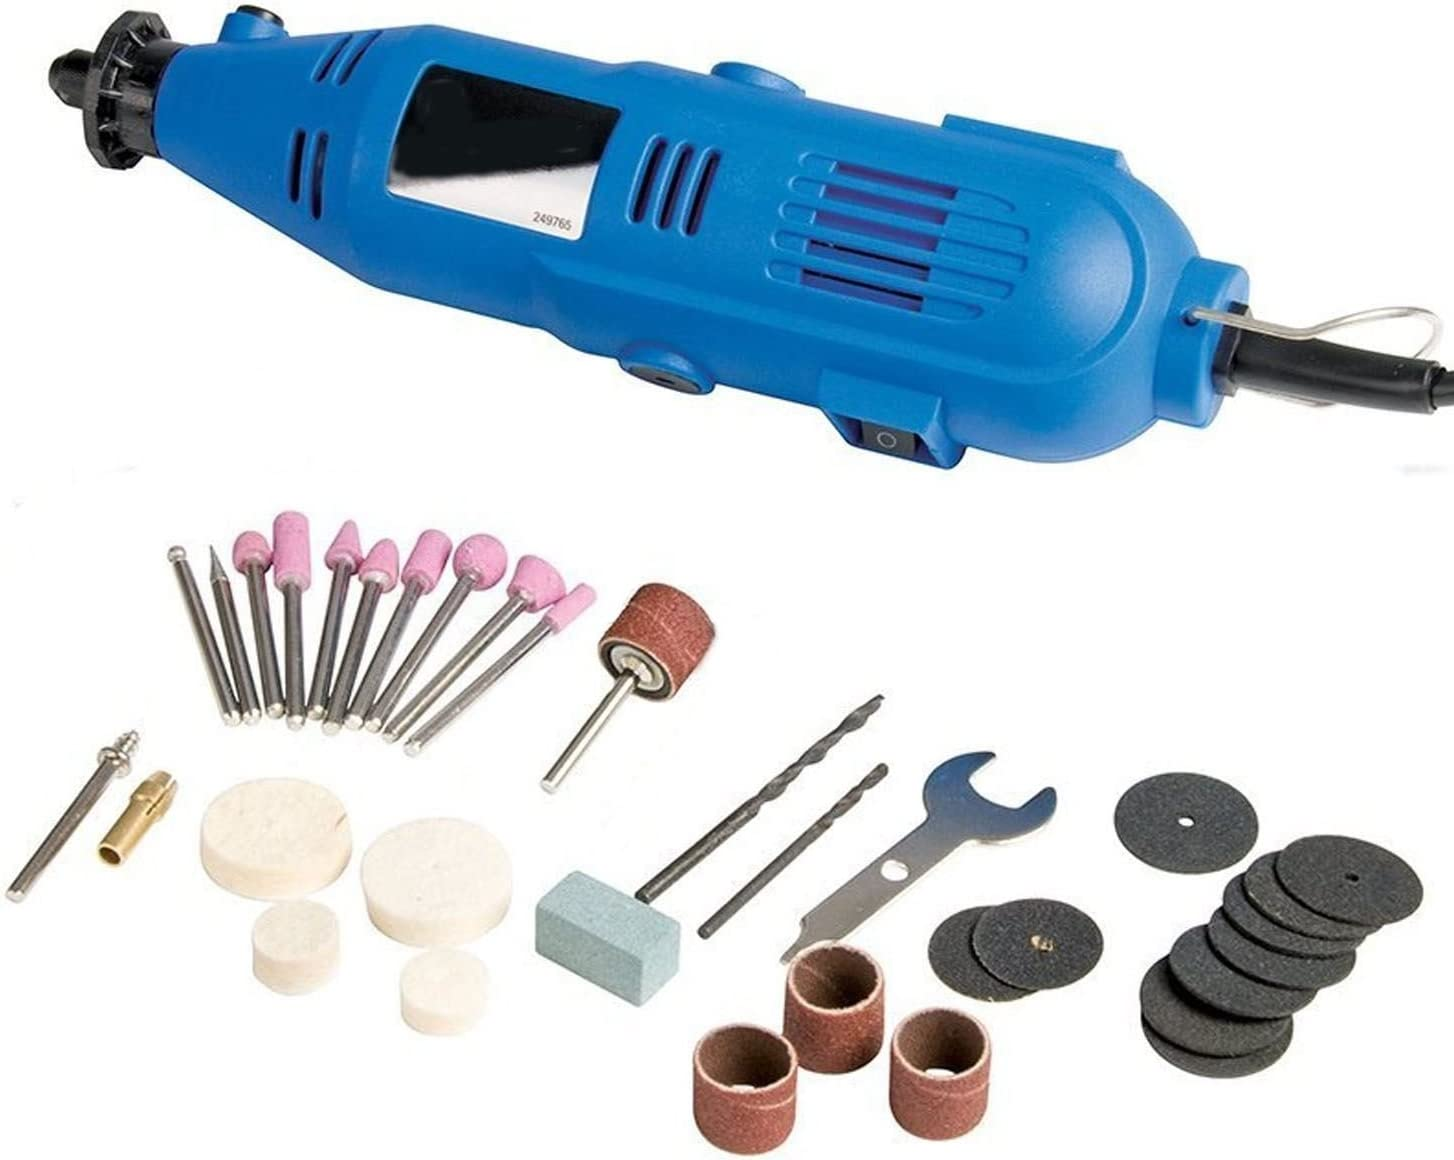 Variable Speed Rotary Grinder Cutter Accessories Dremel Tool Kit 100 Piece Set